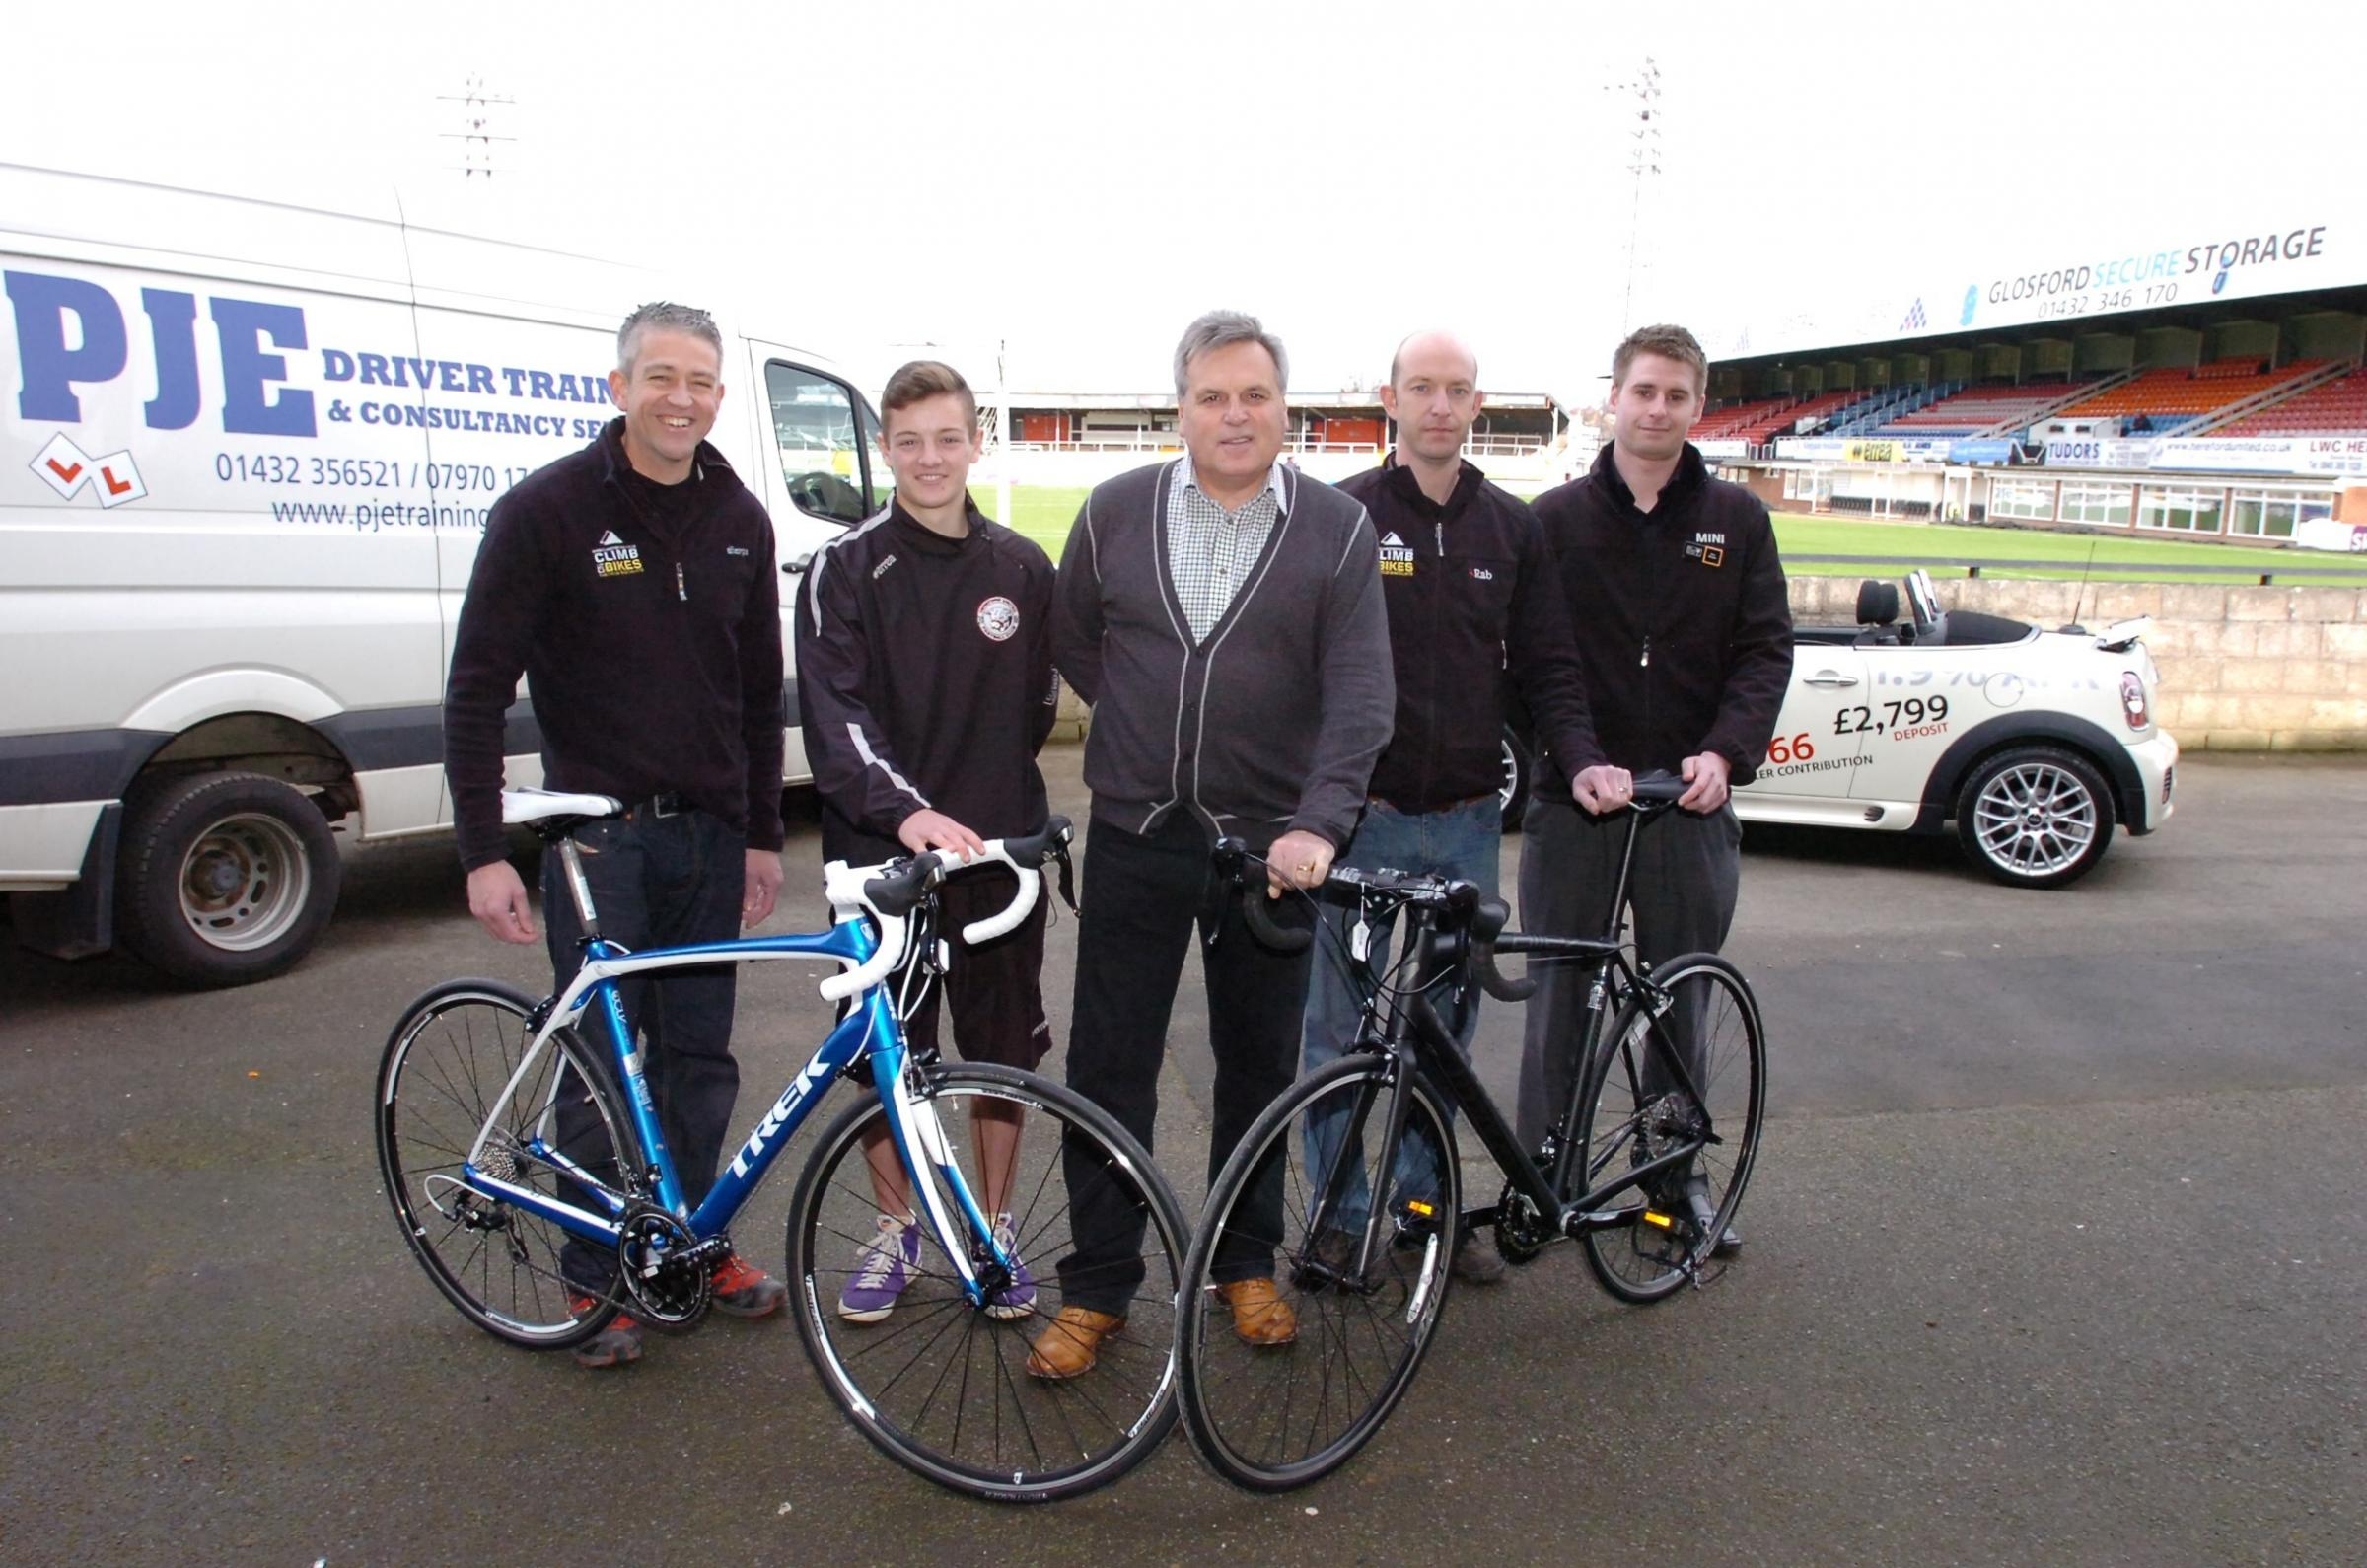 Cyclists and Hereford football fans invited to take on Big Bike Ride next month